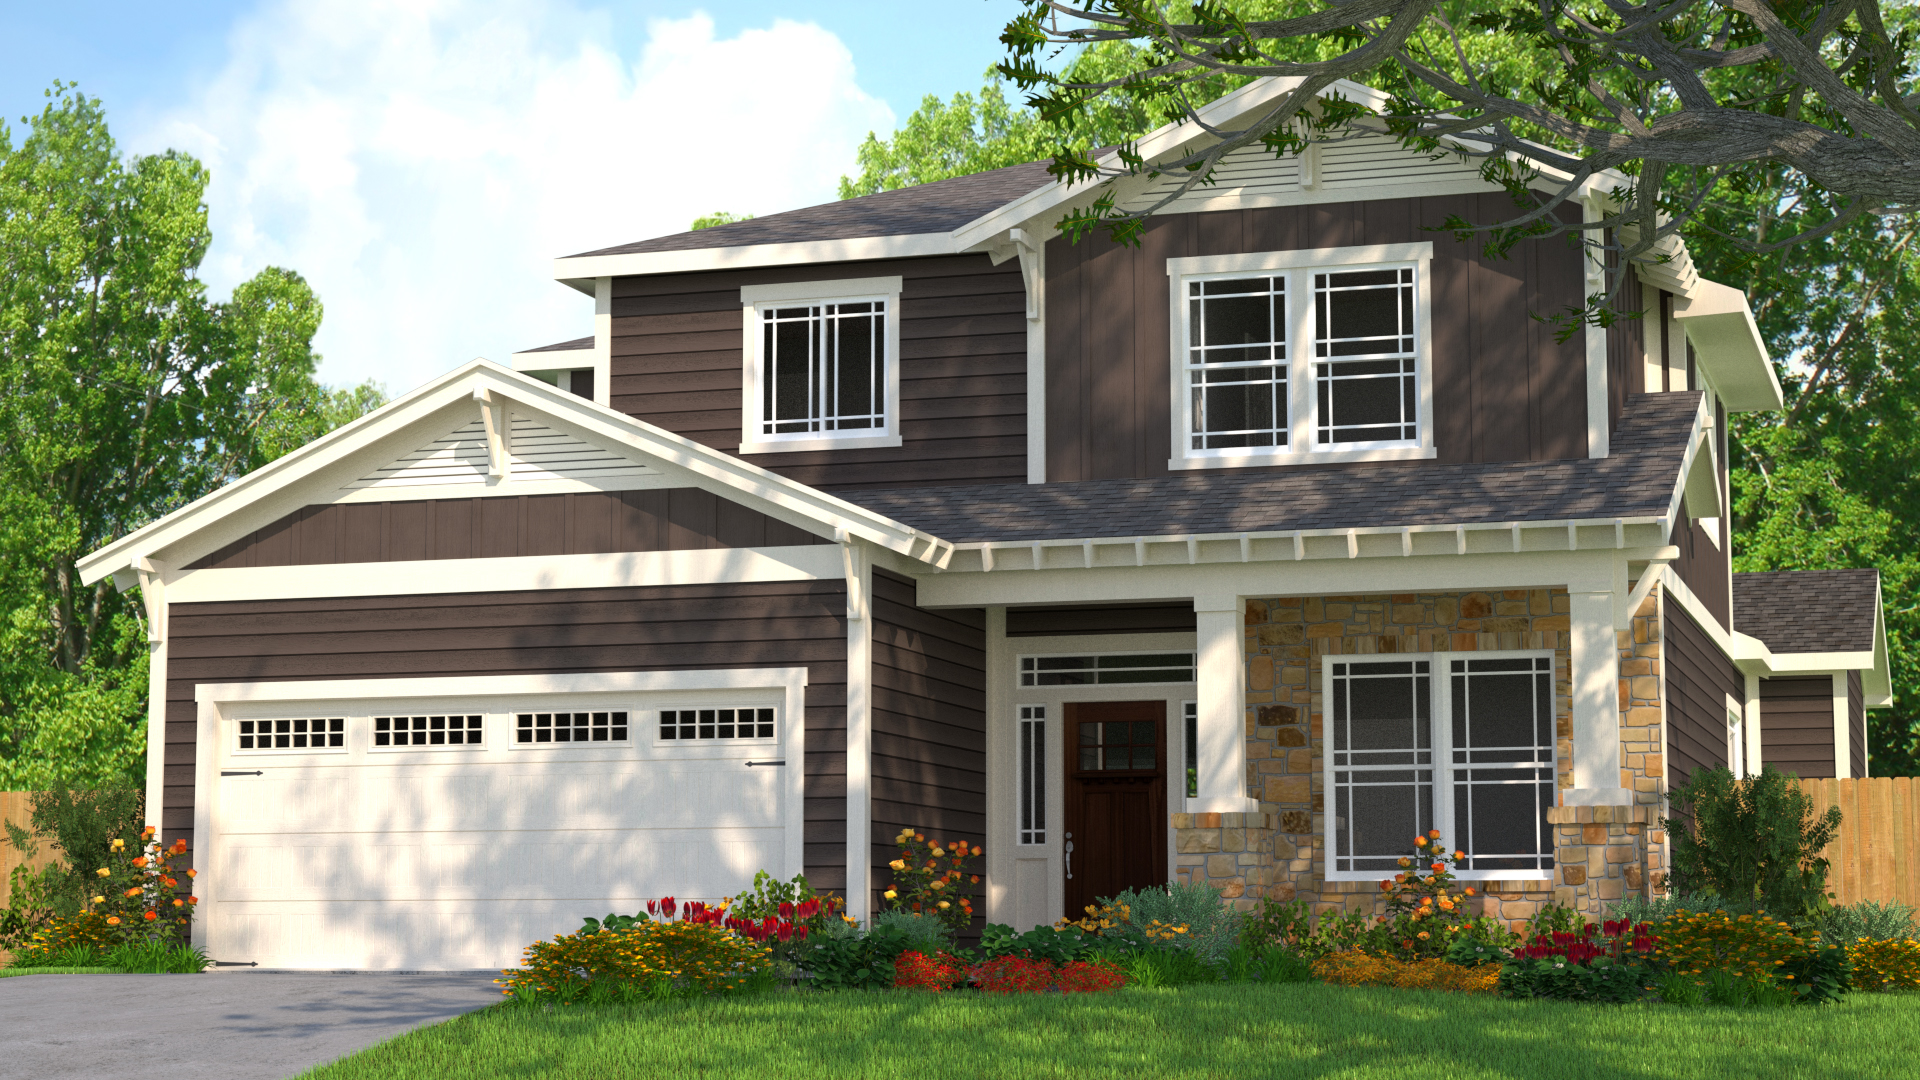 3D Home Rendering - Exterior Paint 2